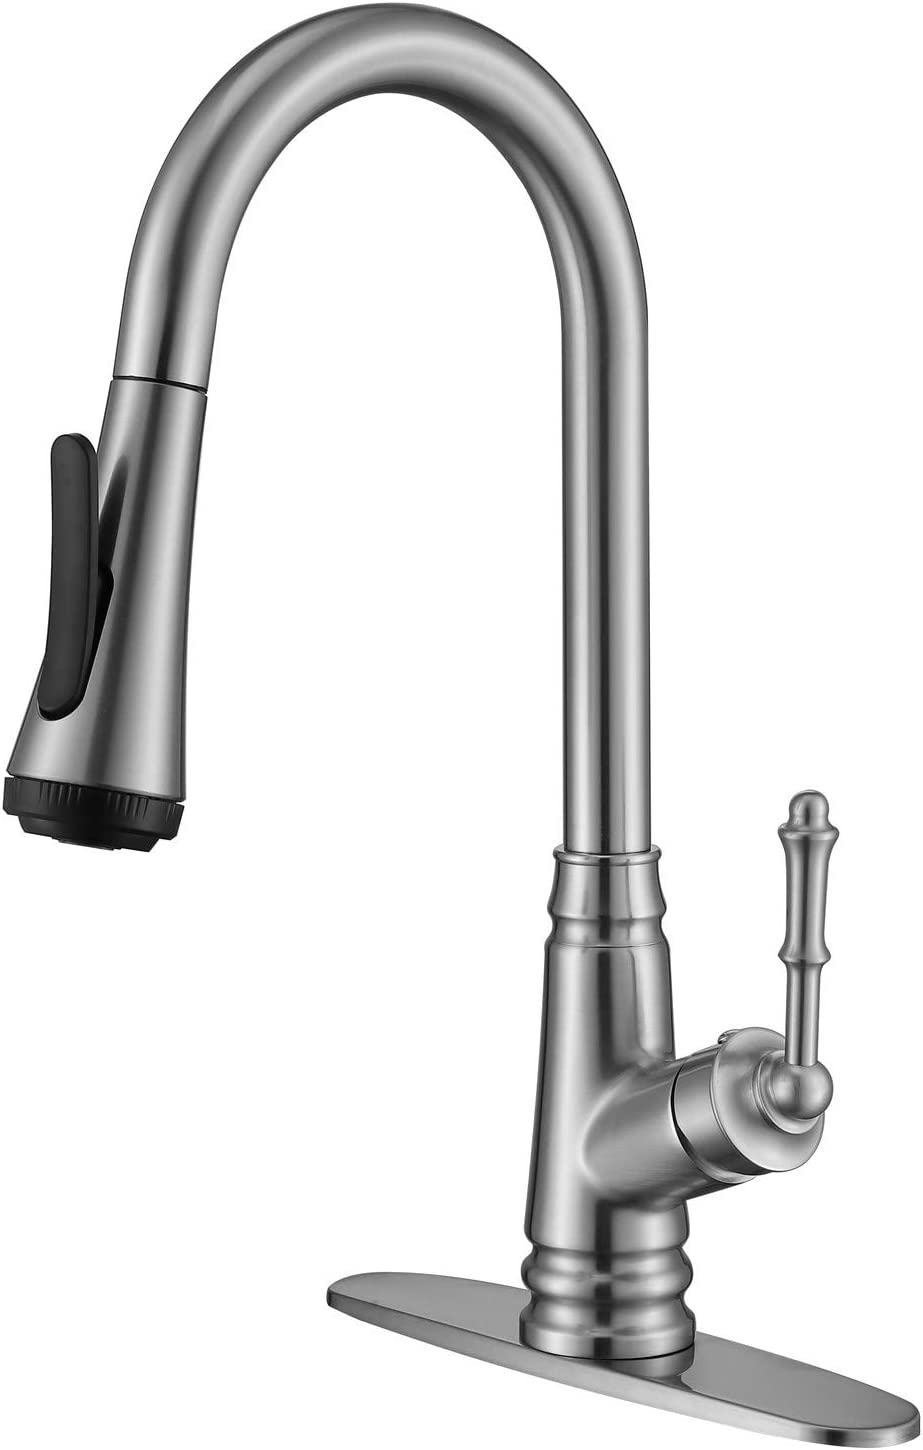 Auktopt Kitchen Sink Faucet With Pull Down Sprayer Brushed Nickel Single Handle Pullout Spray With Deck Plate Amazon Com